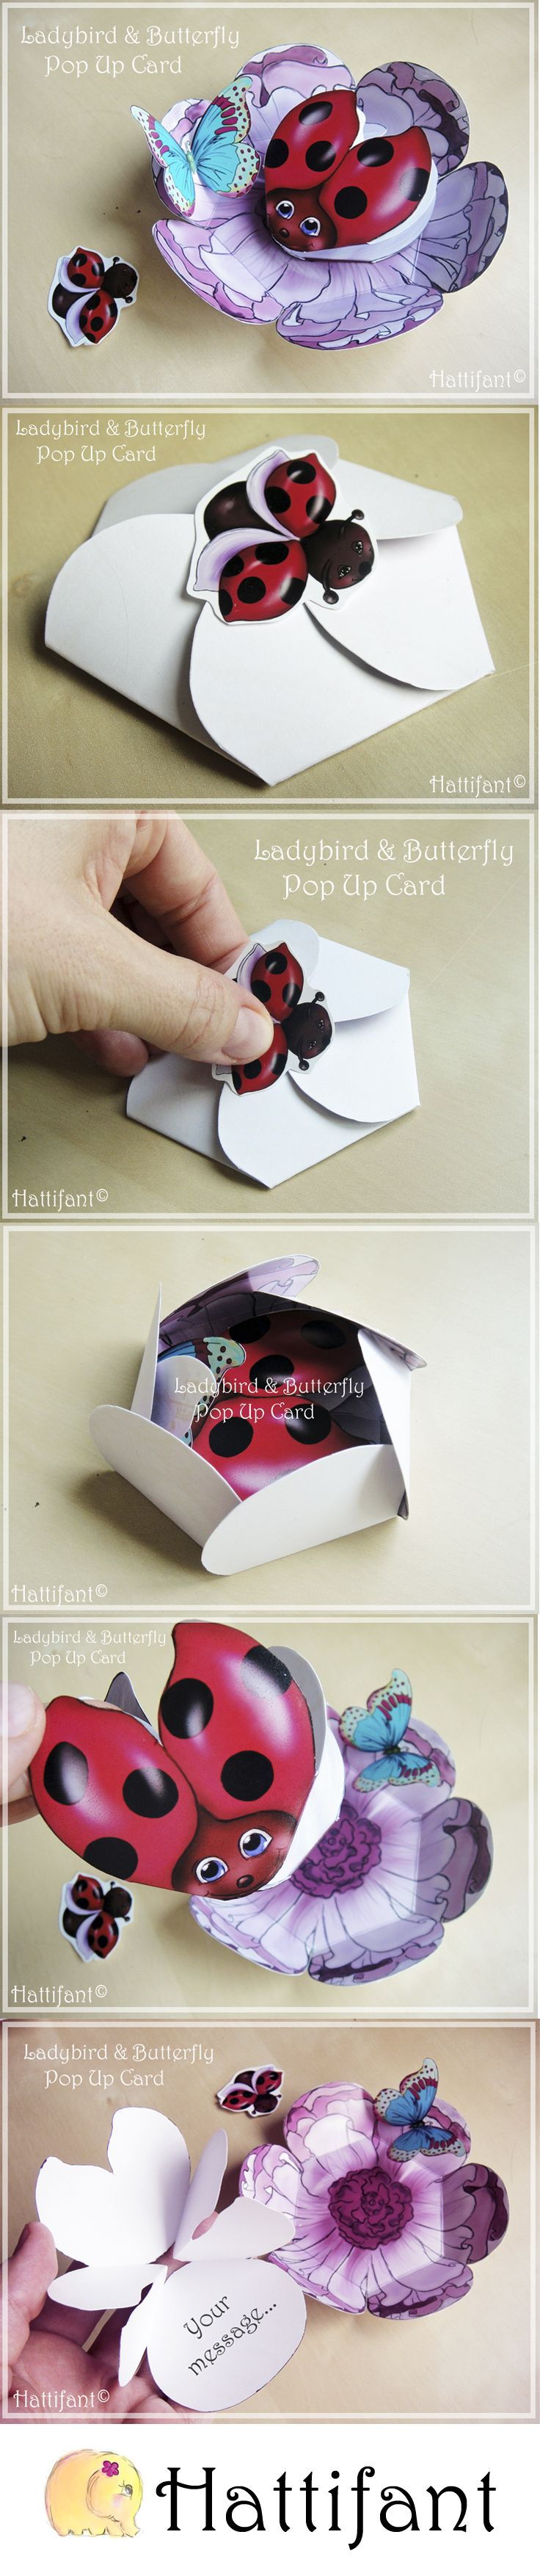 Hattifant's Ladybird & Butterfly Pop Up Card